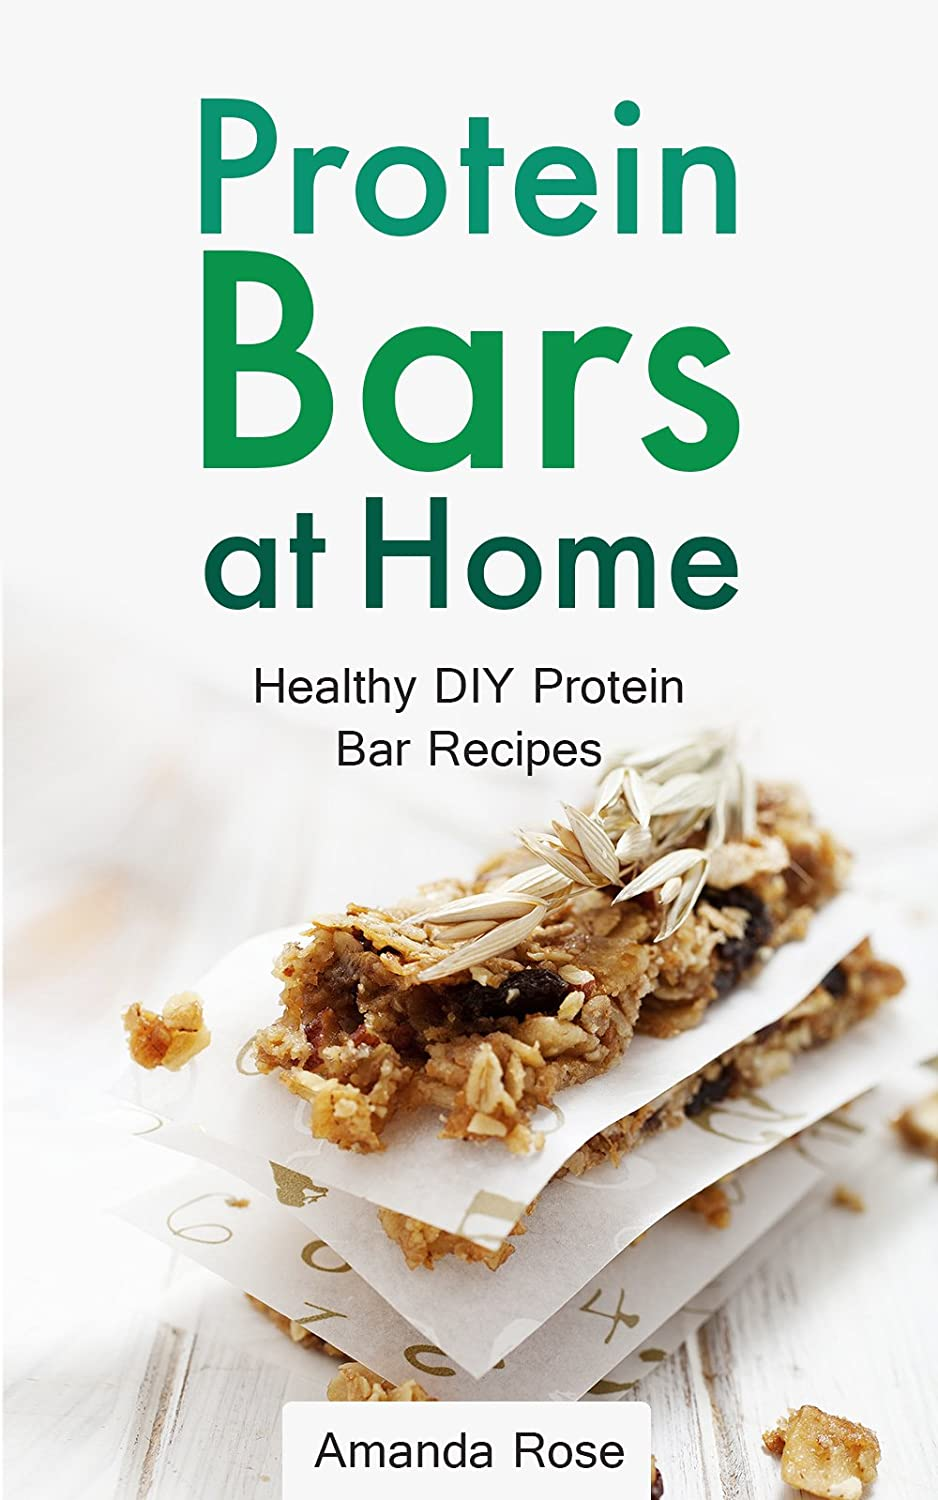 Protein Bars at Home: Healthy DIY Protein Bar Recipes